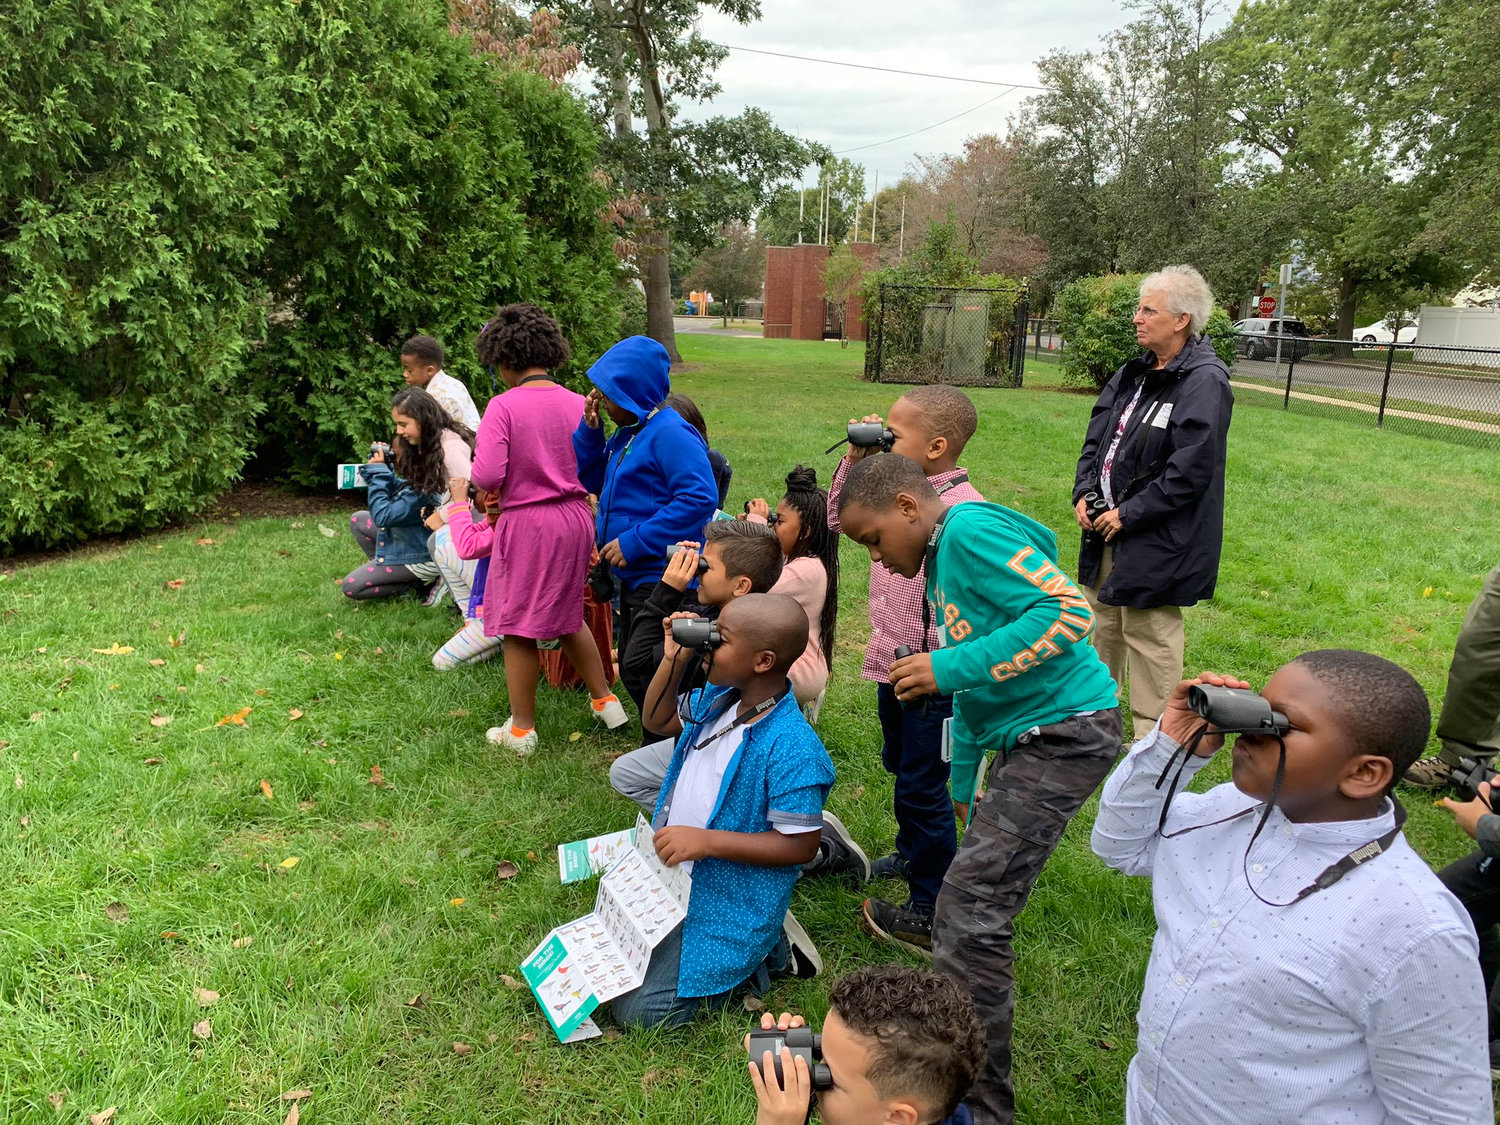 Third-grade students in Mrs. MacDermott's class boosted their science knowledge through a partnership with the Theodore Roosevelt Sanctuary and Audubon Center on Oct. 11.